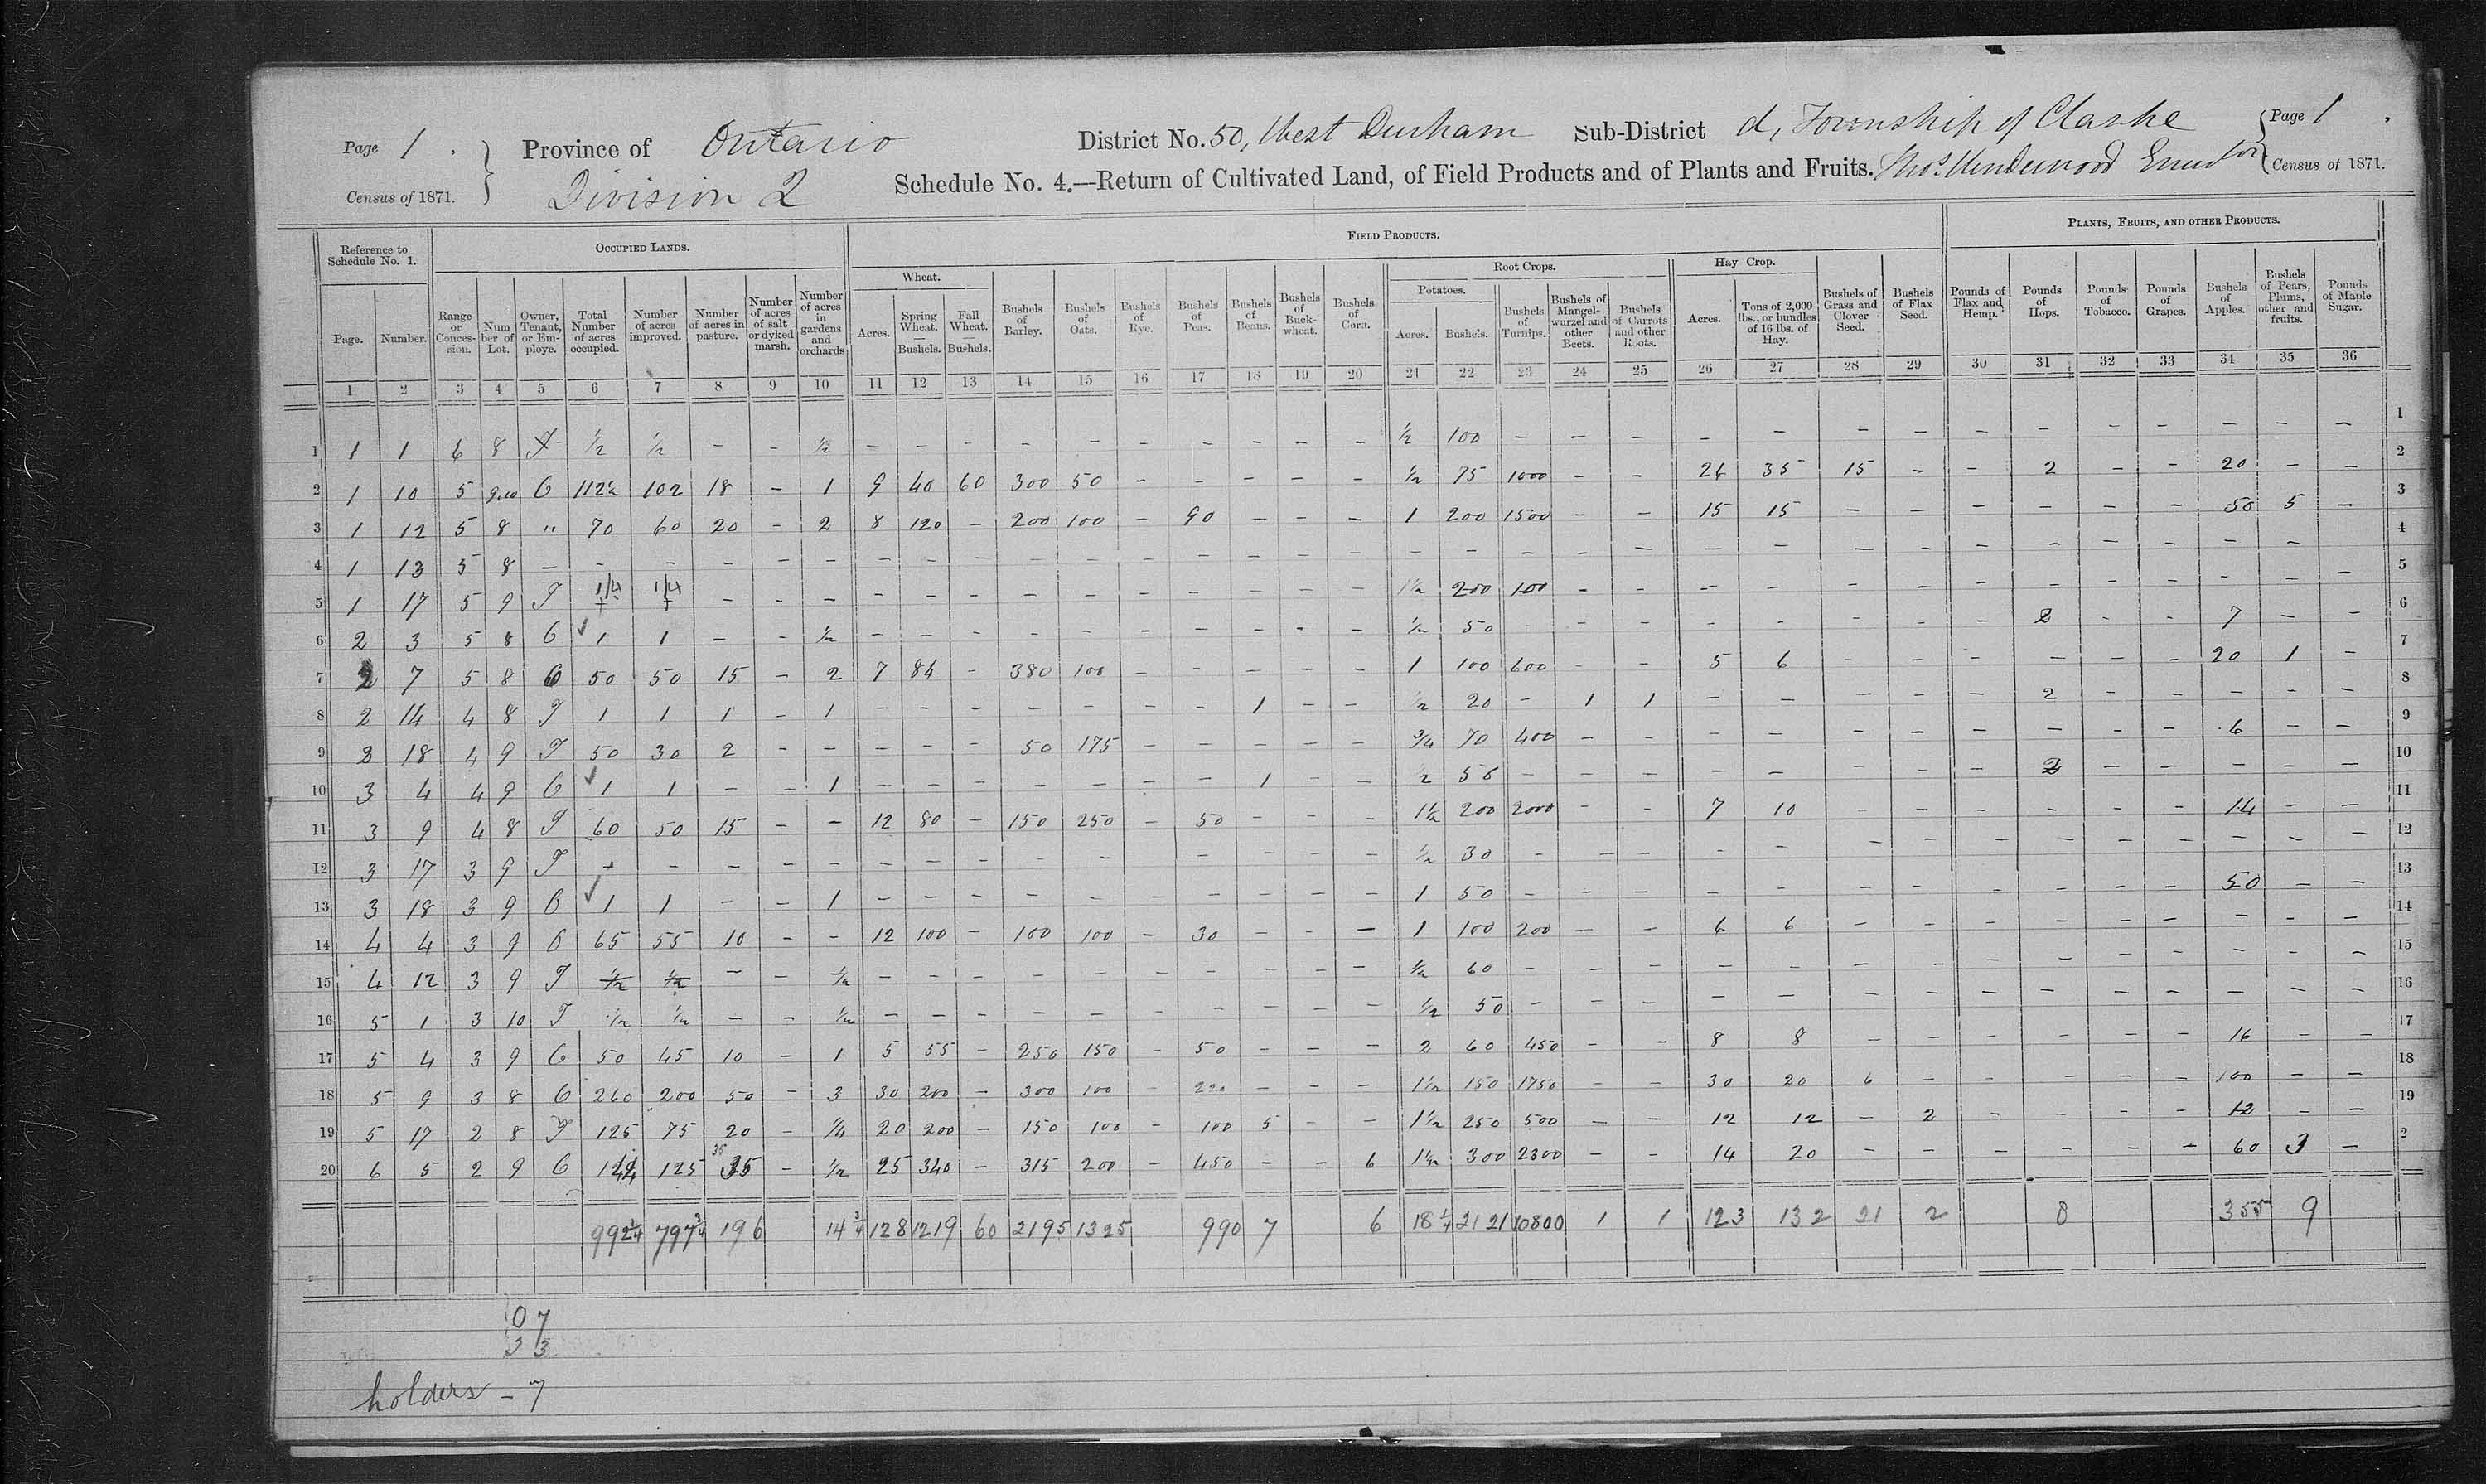 Title: Census of Canada, 1871 - Mikan Number: 142105 - Microform: c-9978